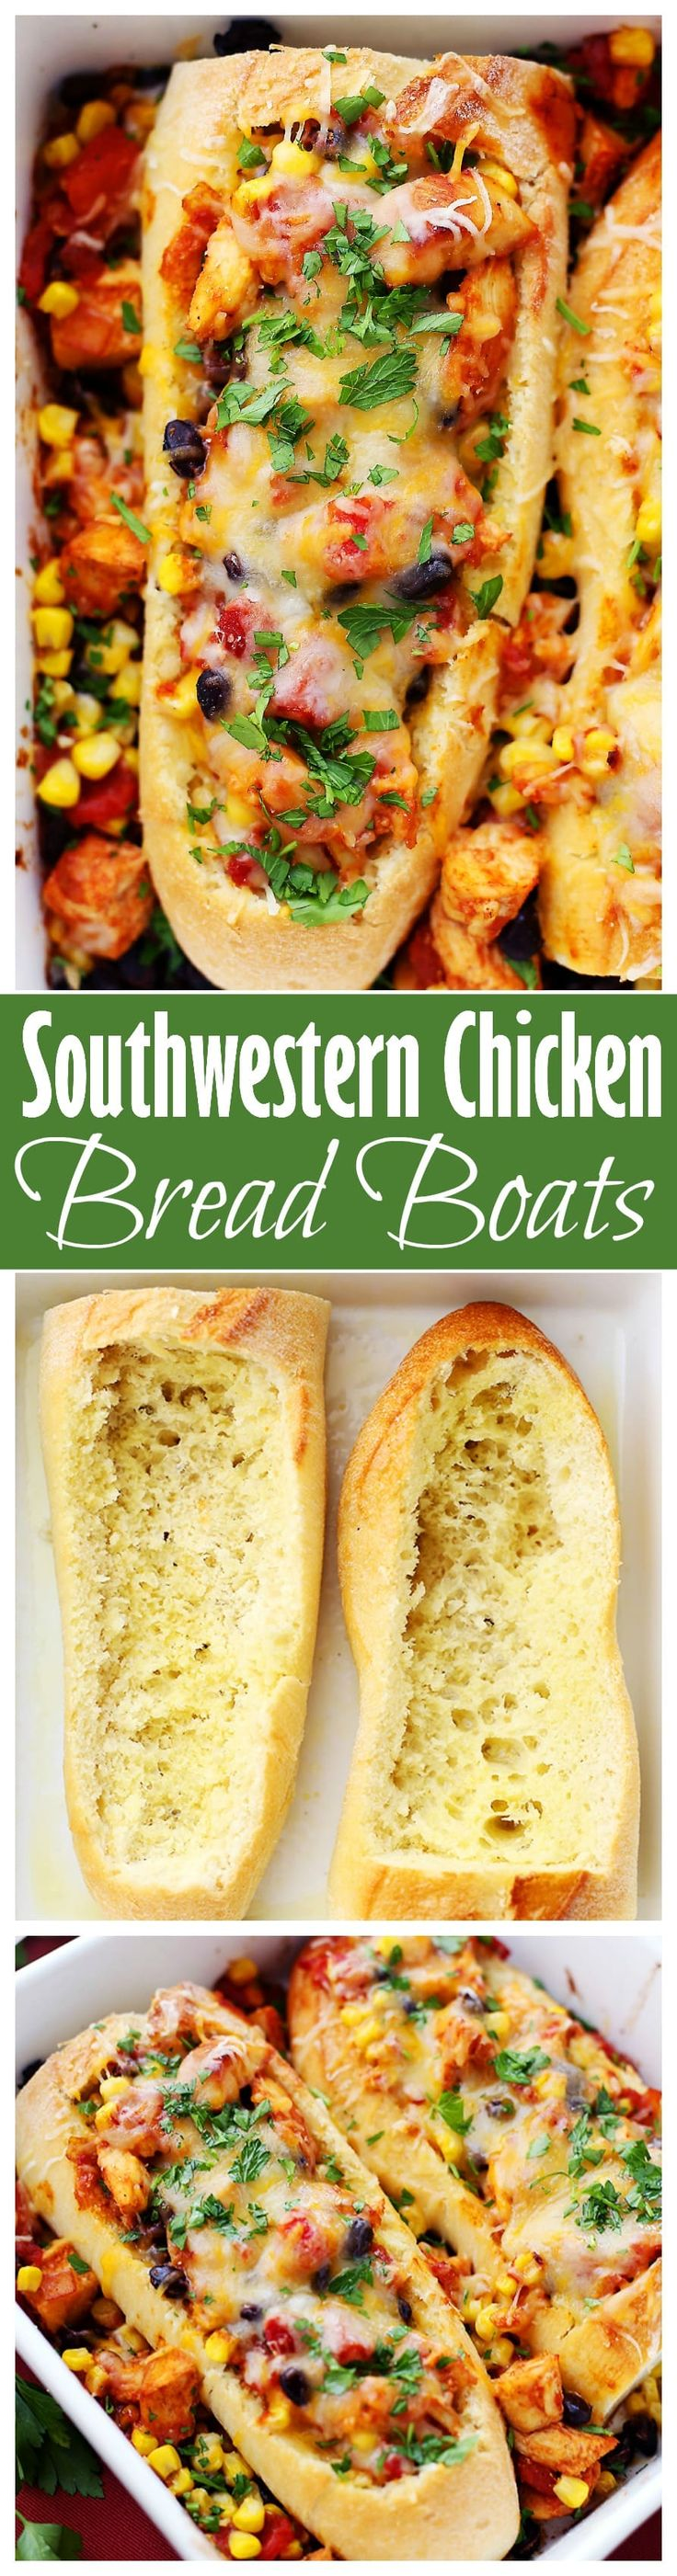 Southwestern Chicken Bread Boats - Stuffed french bread with a hearty, warm and delicious chicken-mixture with tomatoes, black beans, and corn.